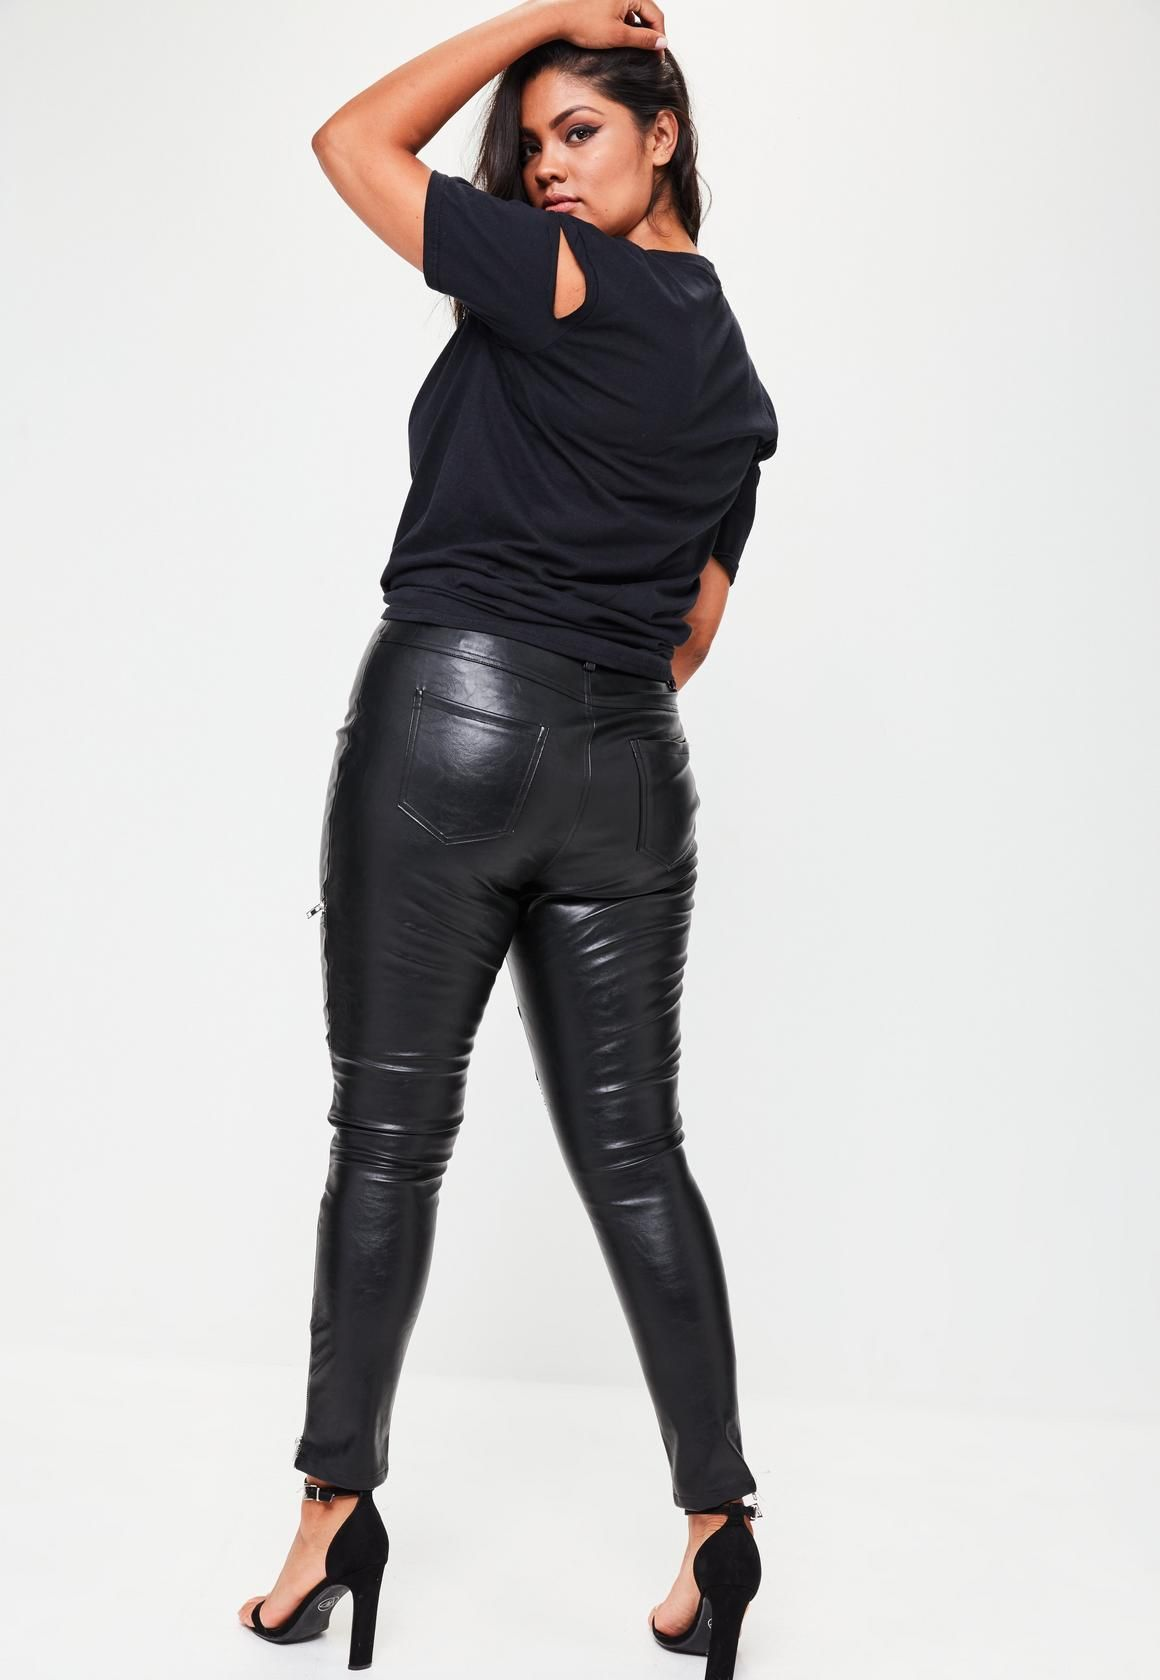 0e14a0e2c1641 Missguided - Plus Size Black Premium Faux Leather Pants